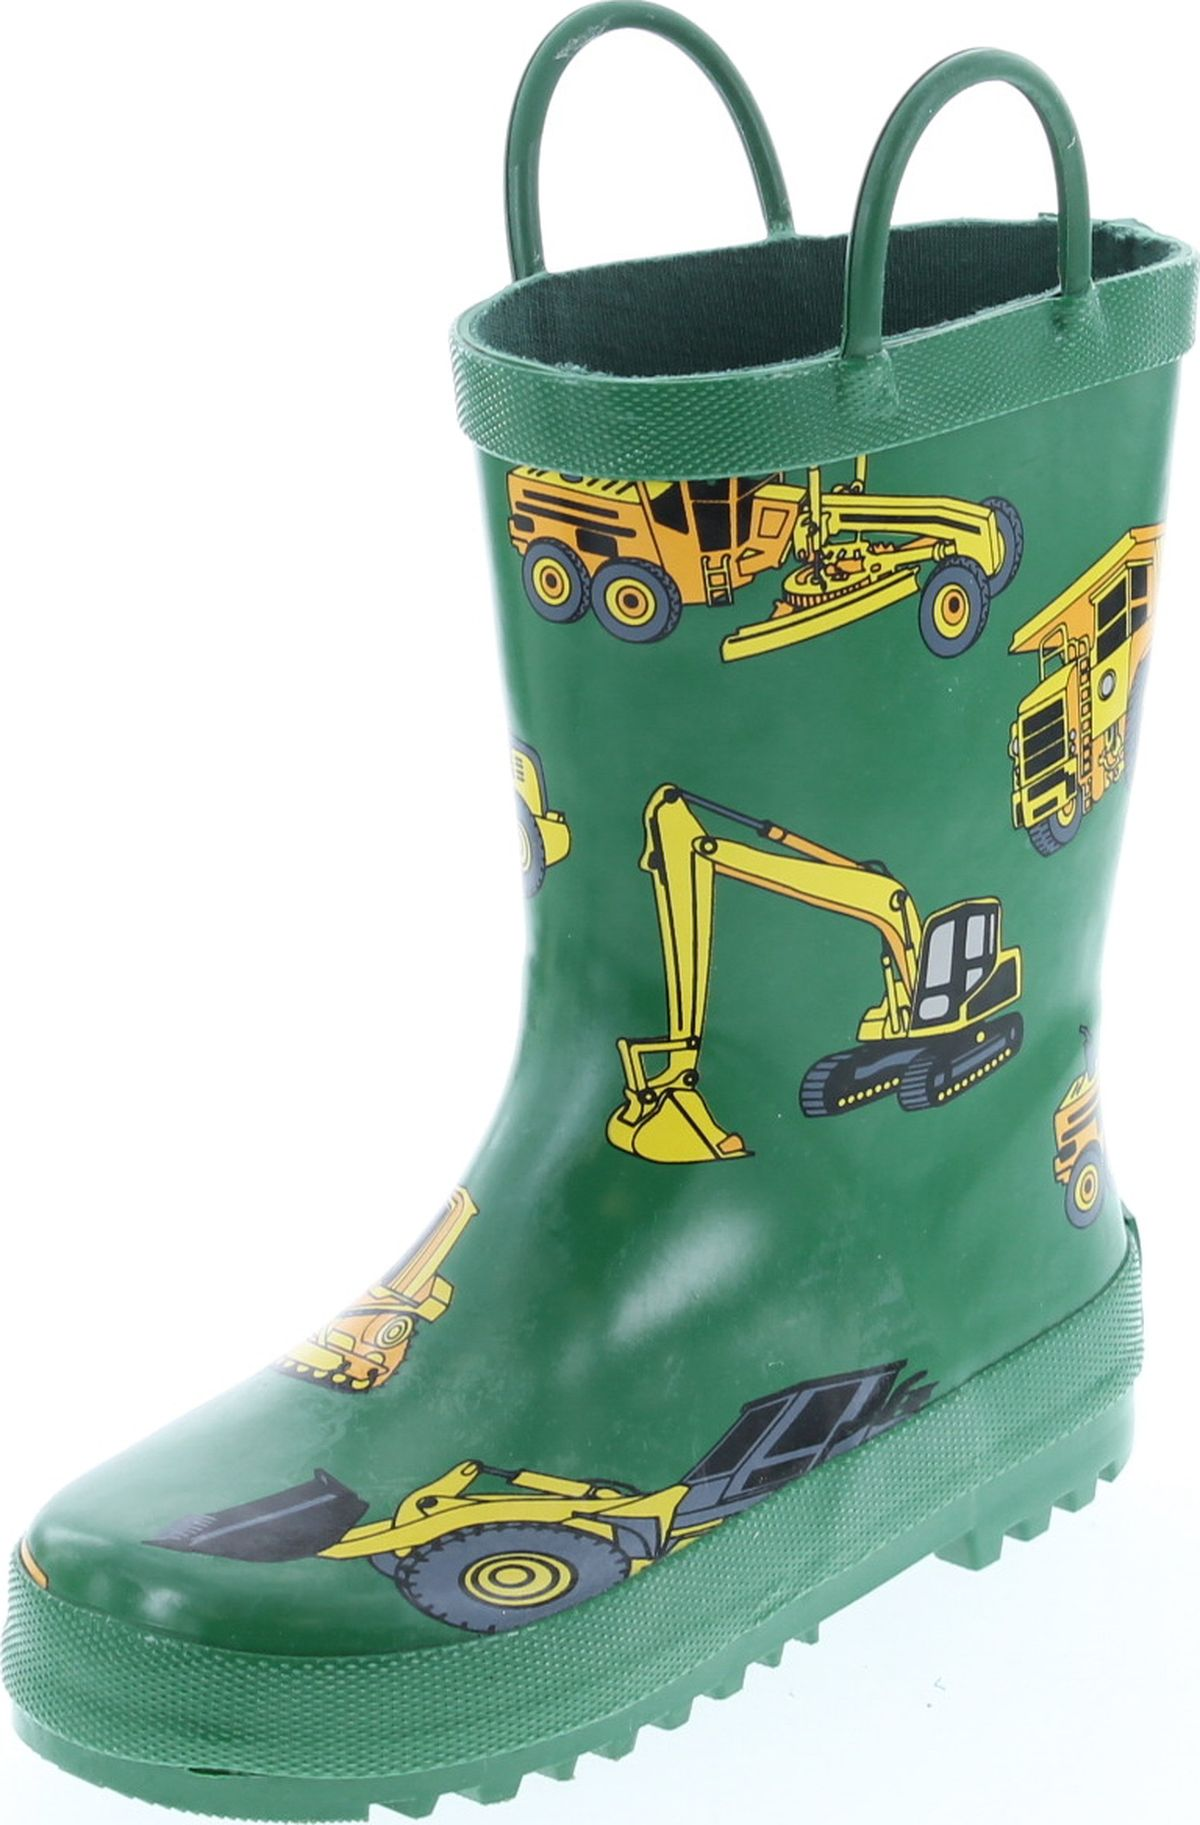 Foxfire For Kids Green with Constuction Equipment Rubber Boots Matte Finish